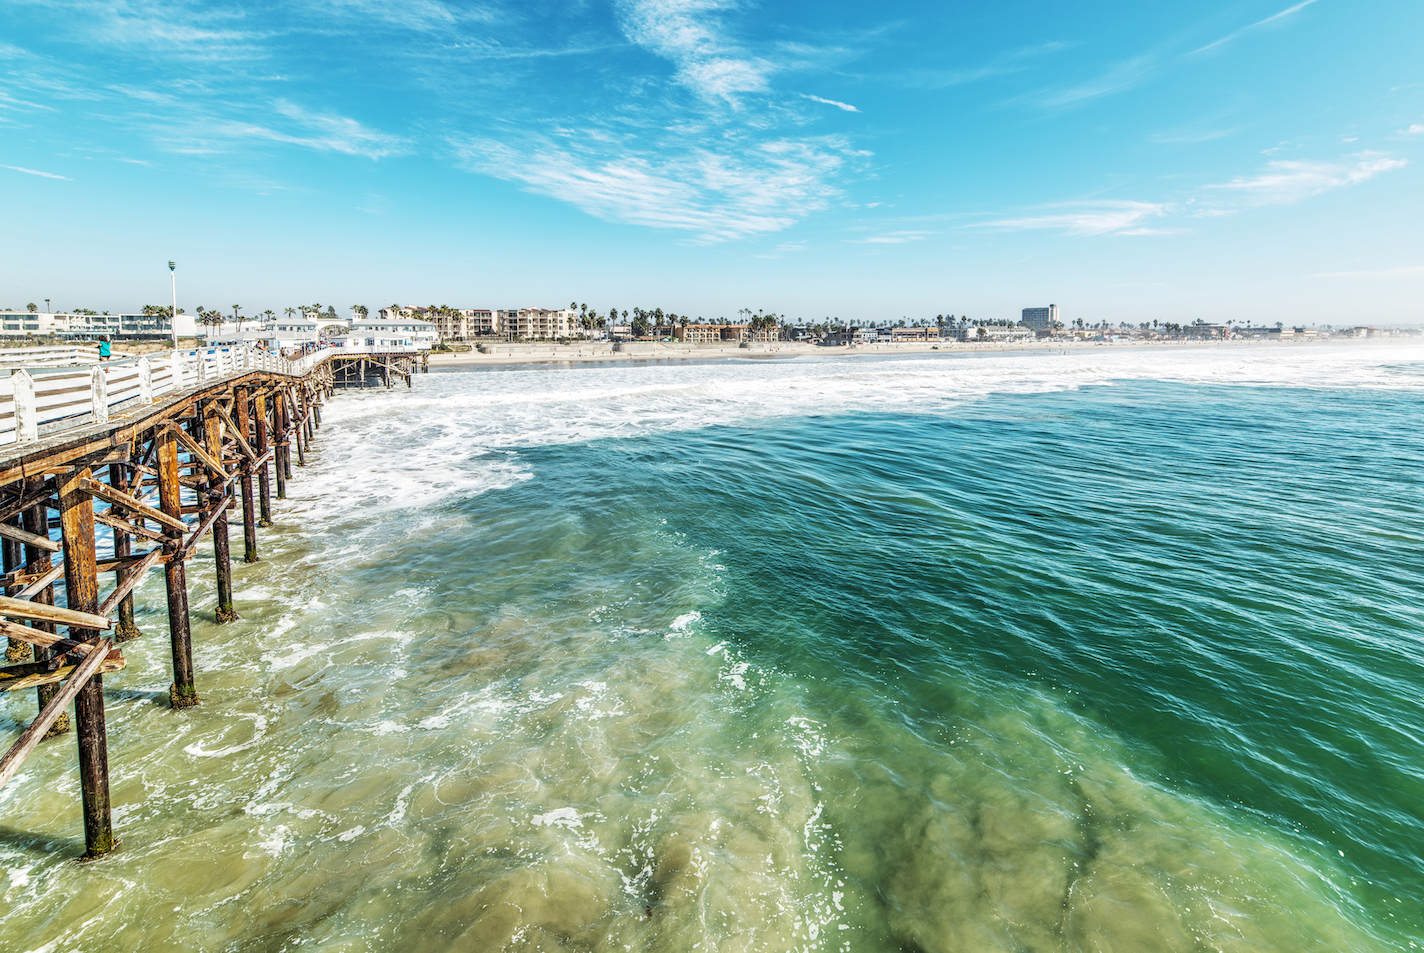 Record heatwaves aren't just affecting those of us on land, as a new study has found that the ocean is dealing with its own heatwaves.